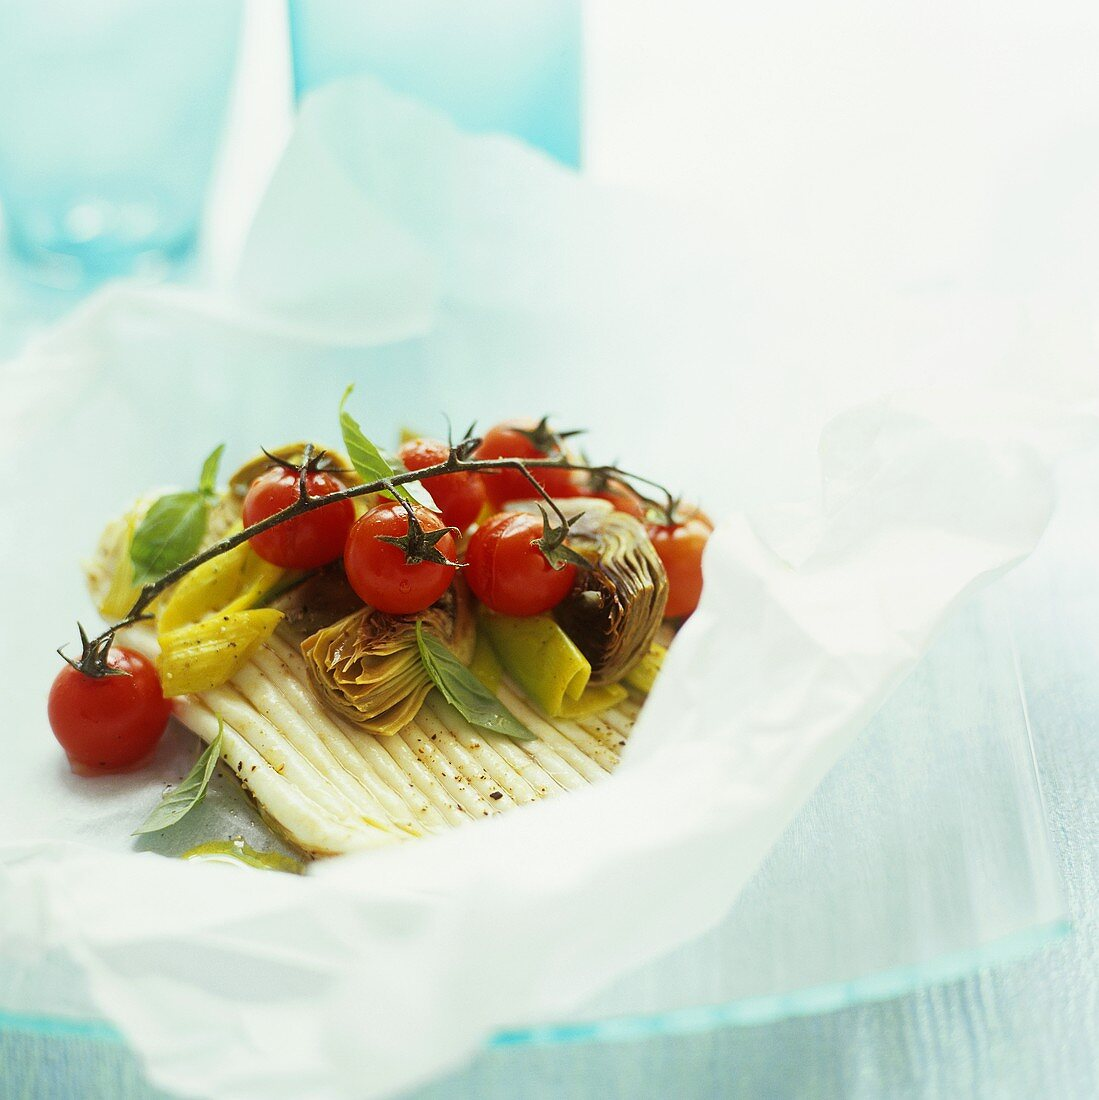 Skate wing with vegetables in parchment paper